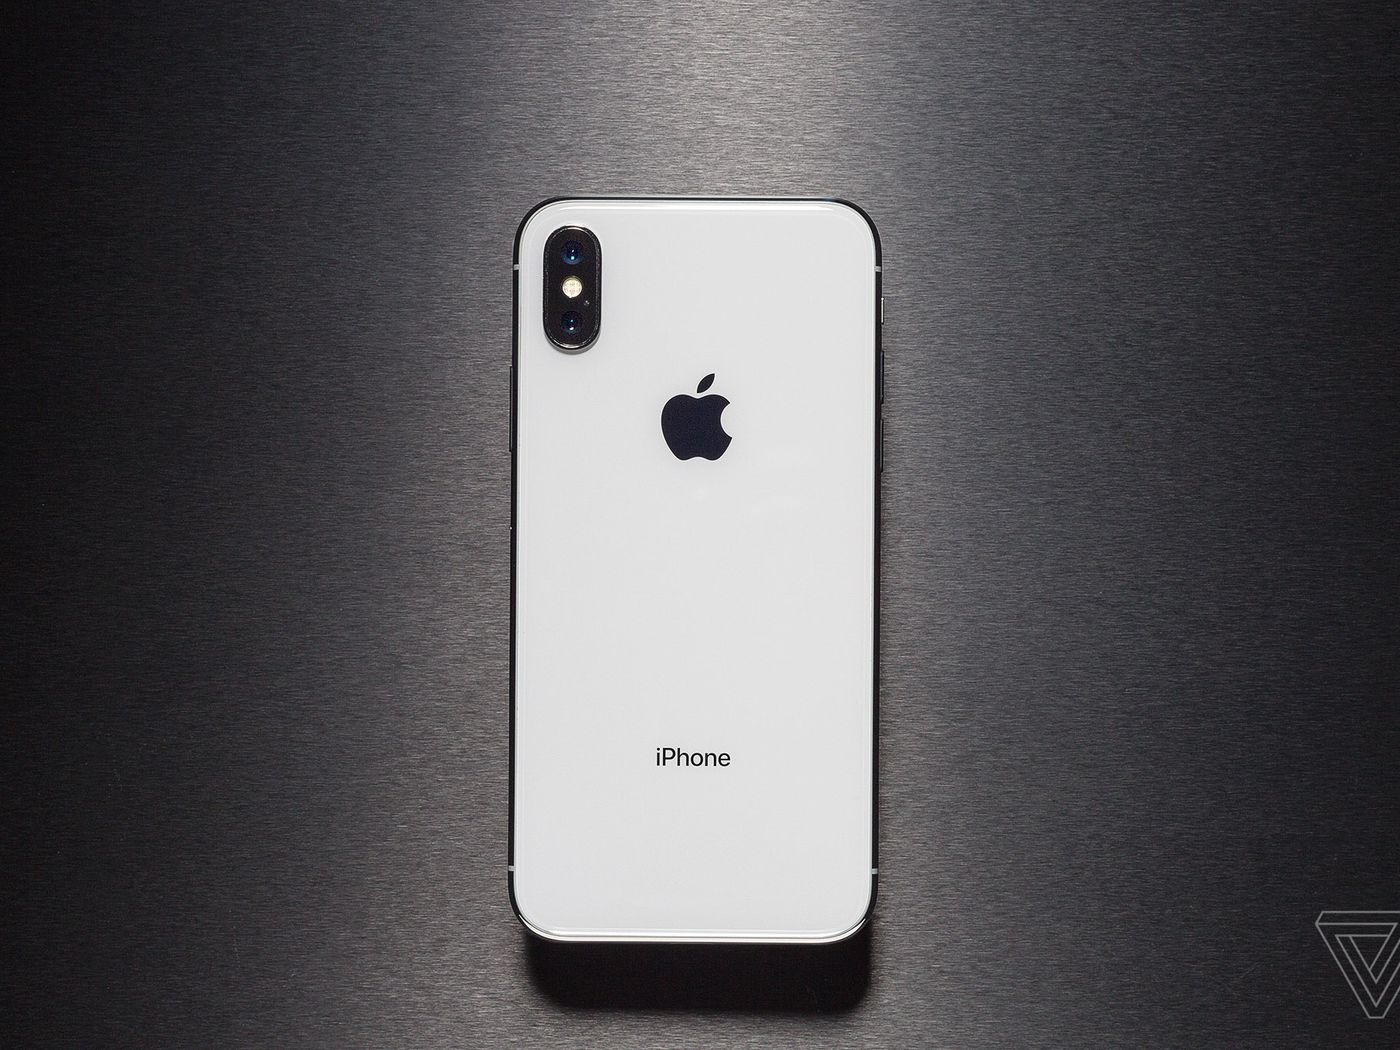 52c3617d9579d4 Apple now sells an unlocked, SIM-free version of the iPhone X - The Verge